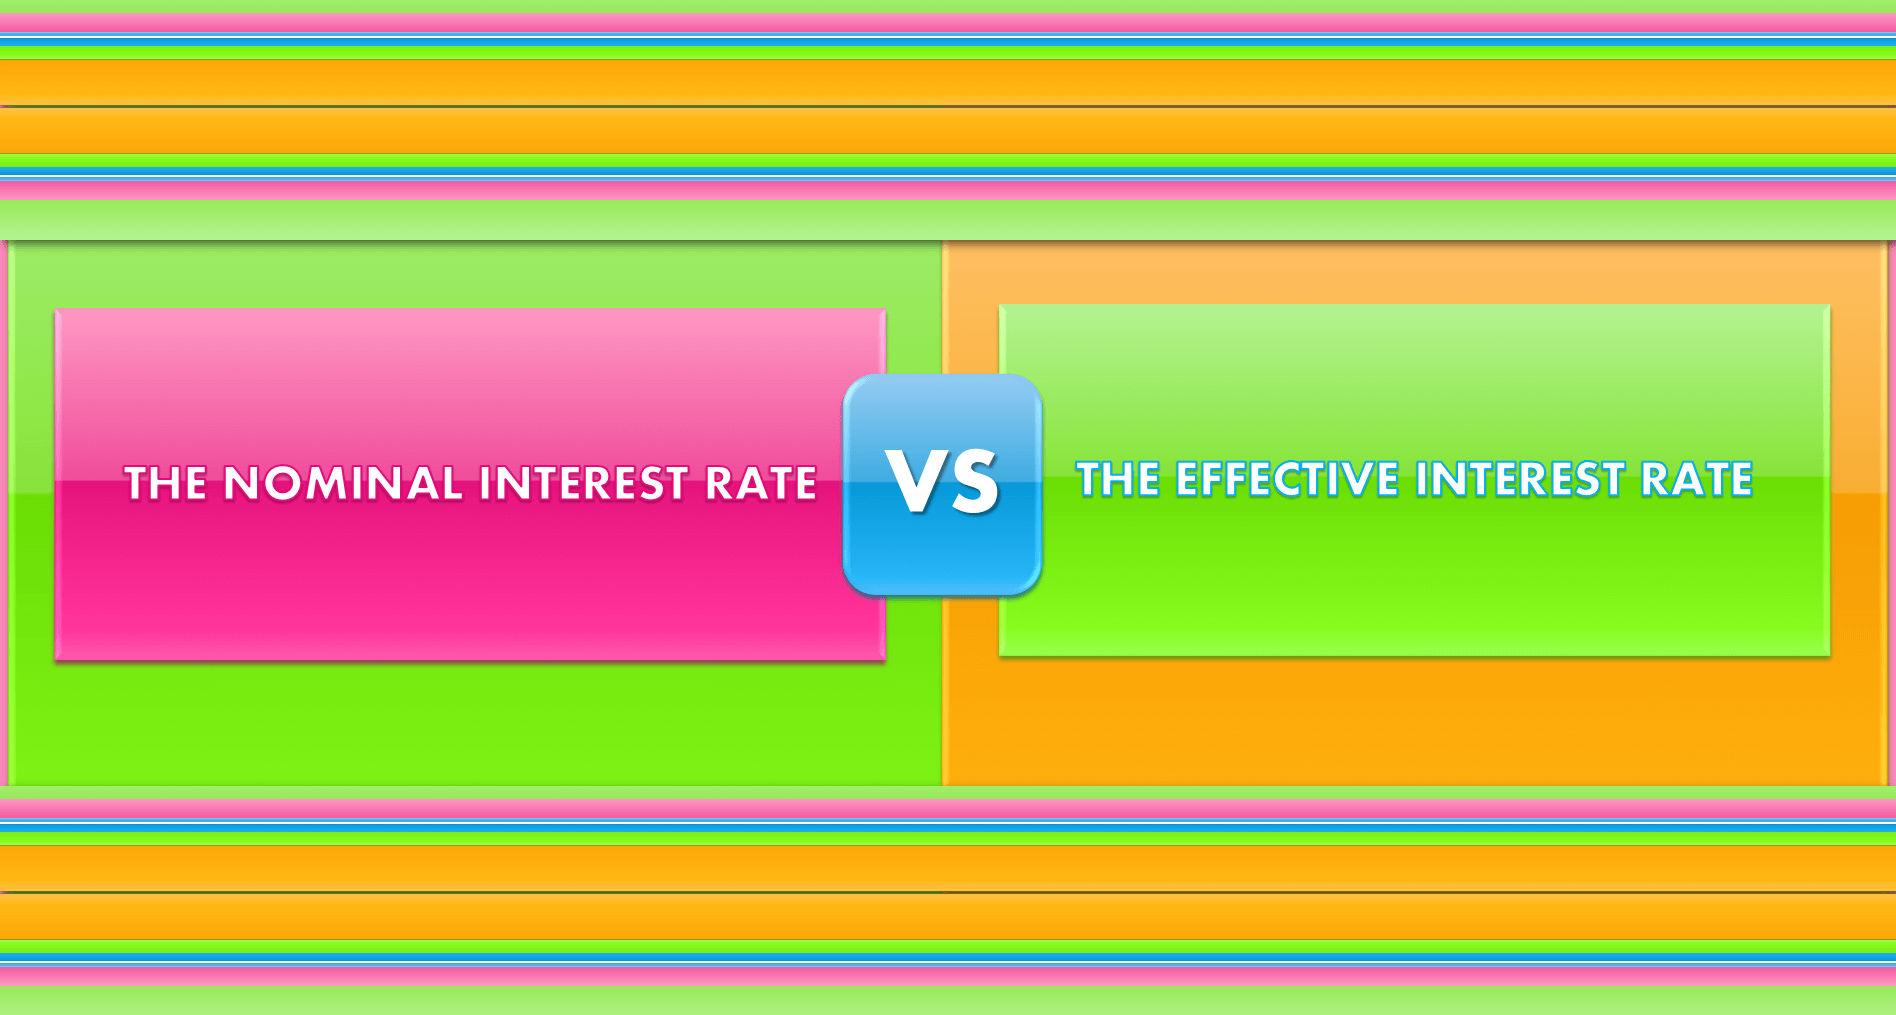 how to get effective annual rate from nominal